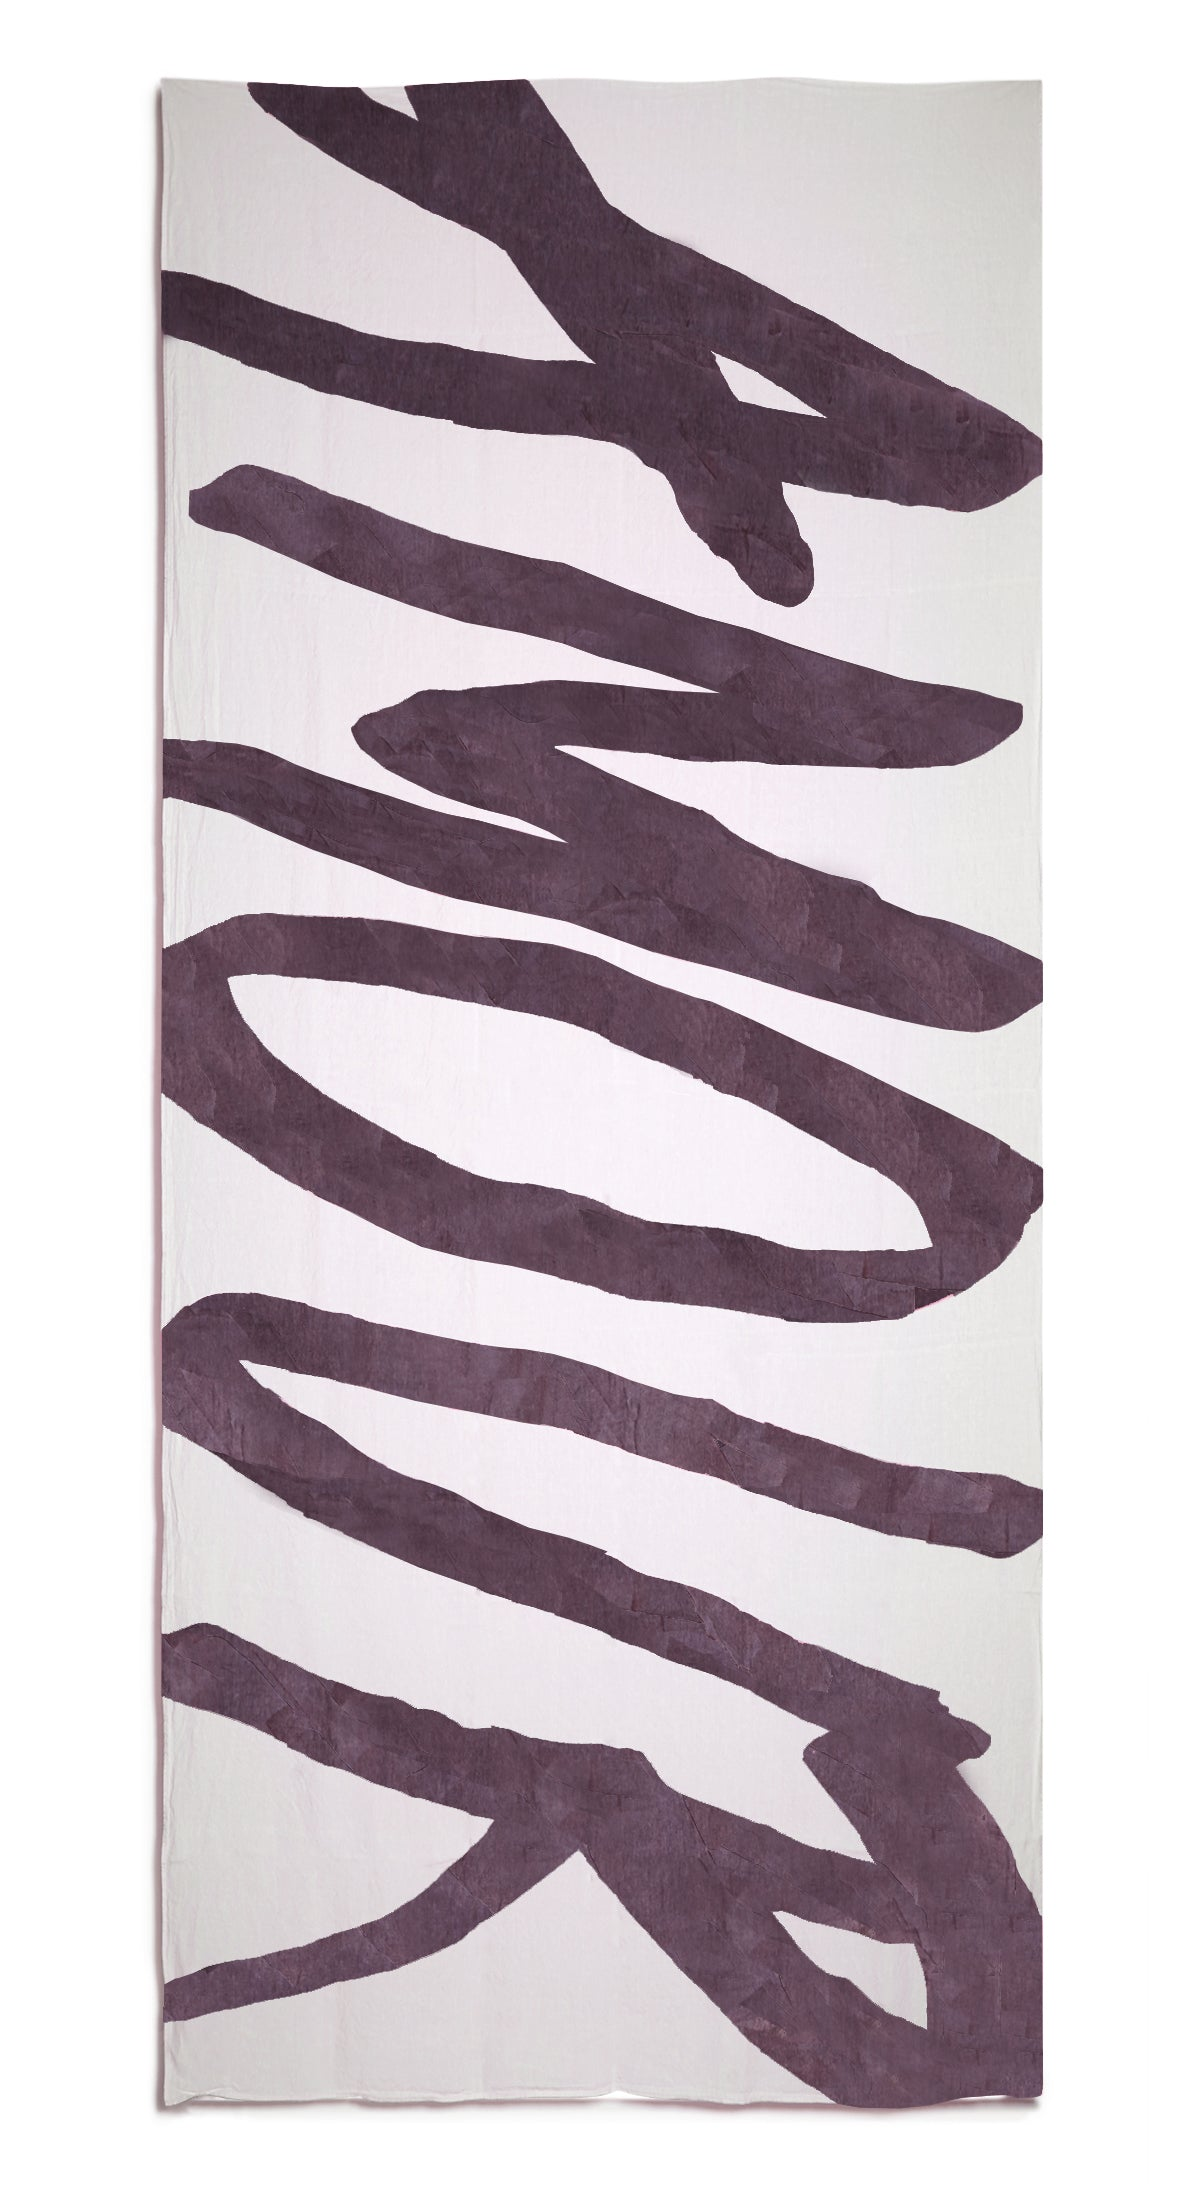 Amour Word Linen Tablecloth in Grape Purple